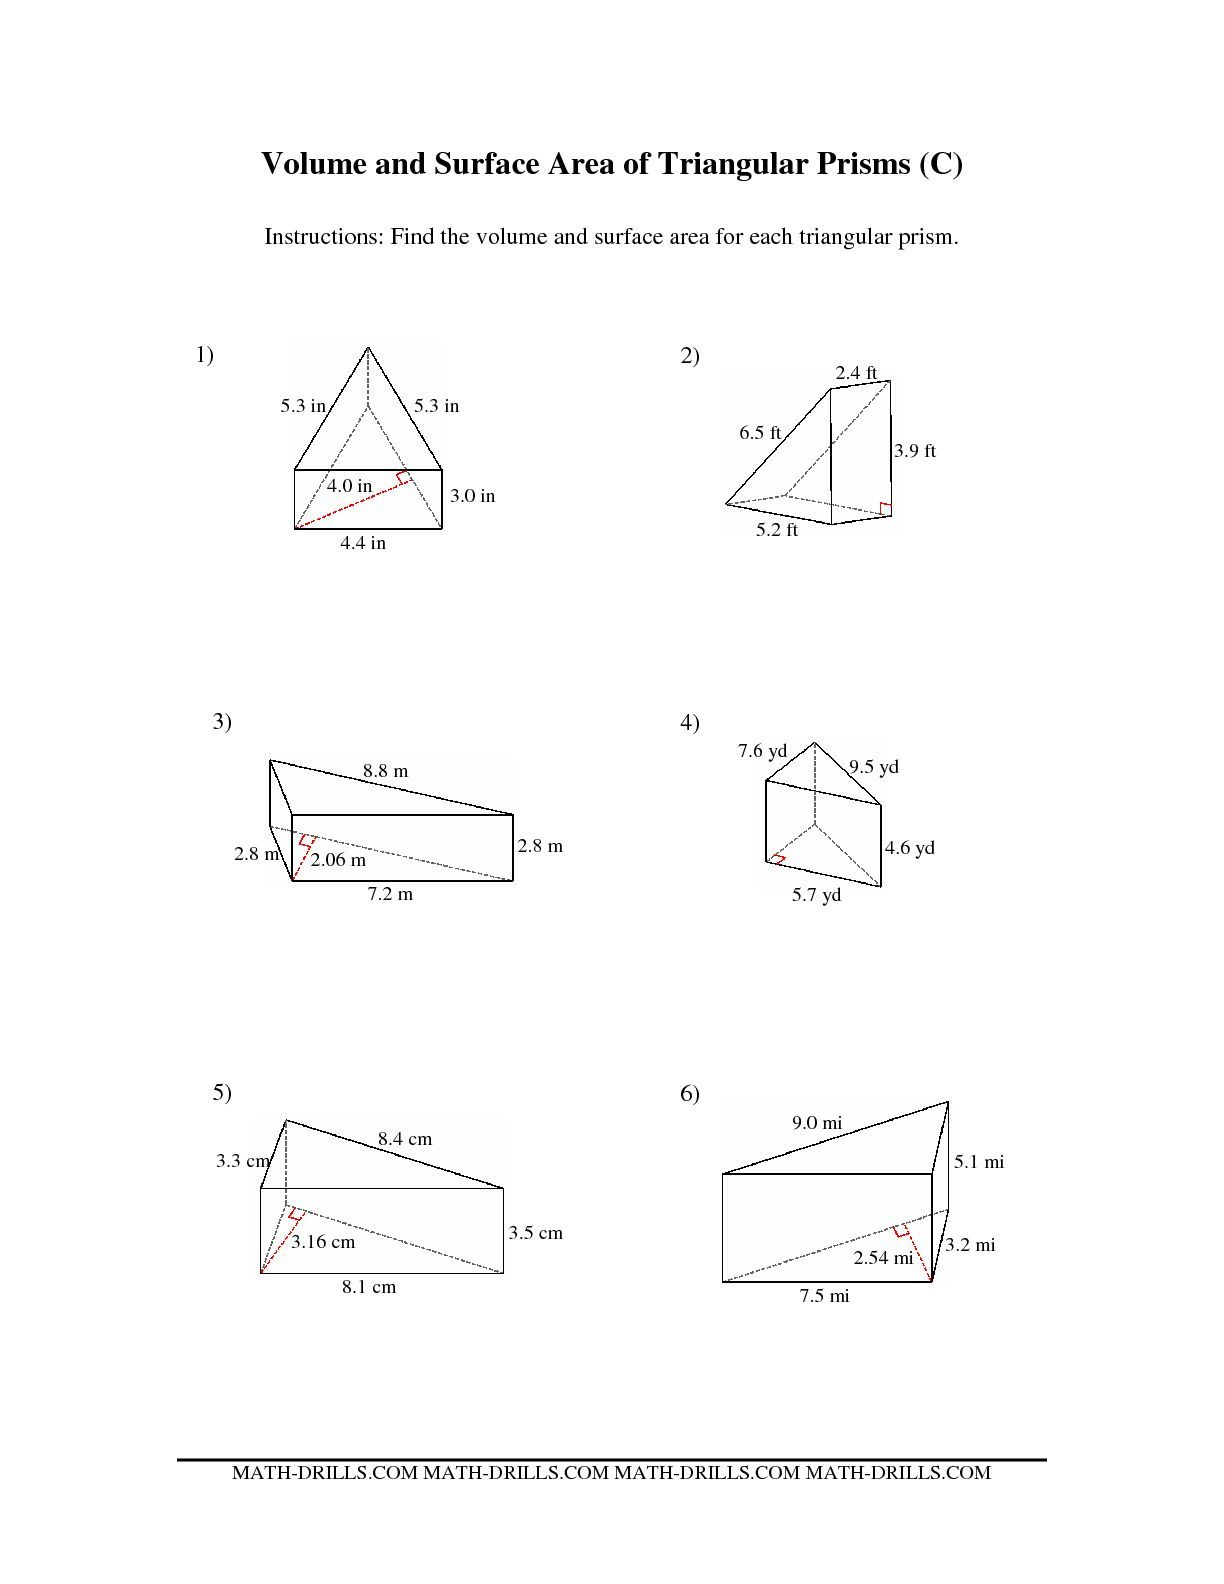 worksheet Surface Area Of Triangular Prism Worksheet the volume and surface area of triangular prisms c math worksheet from measurement